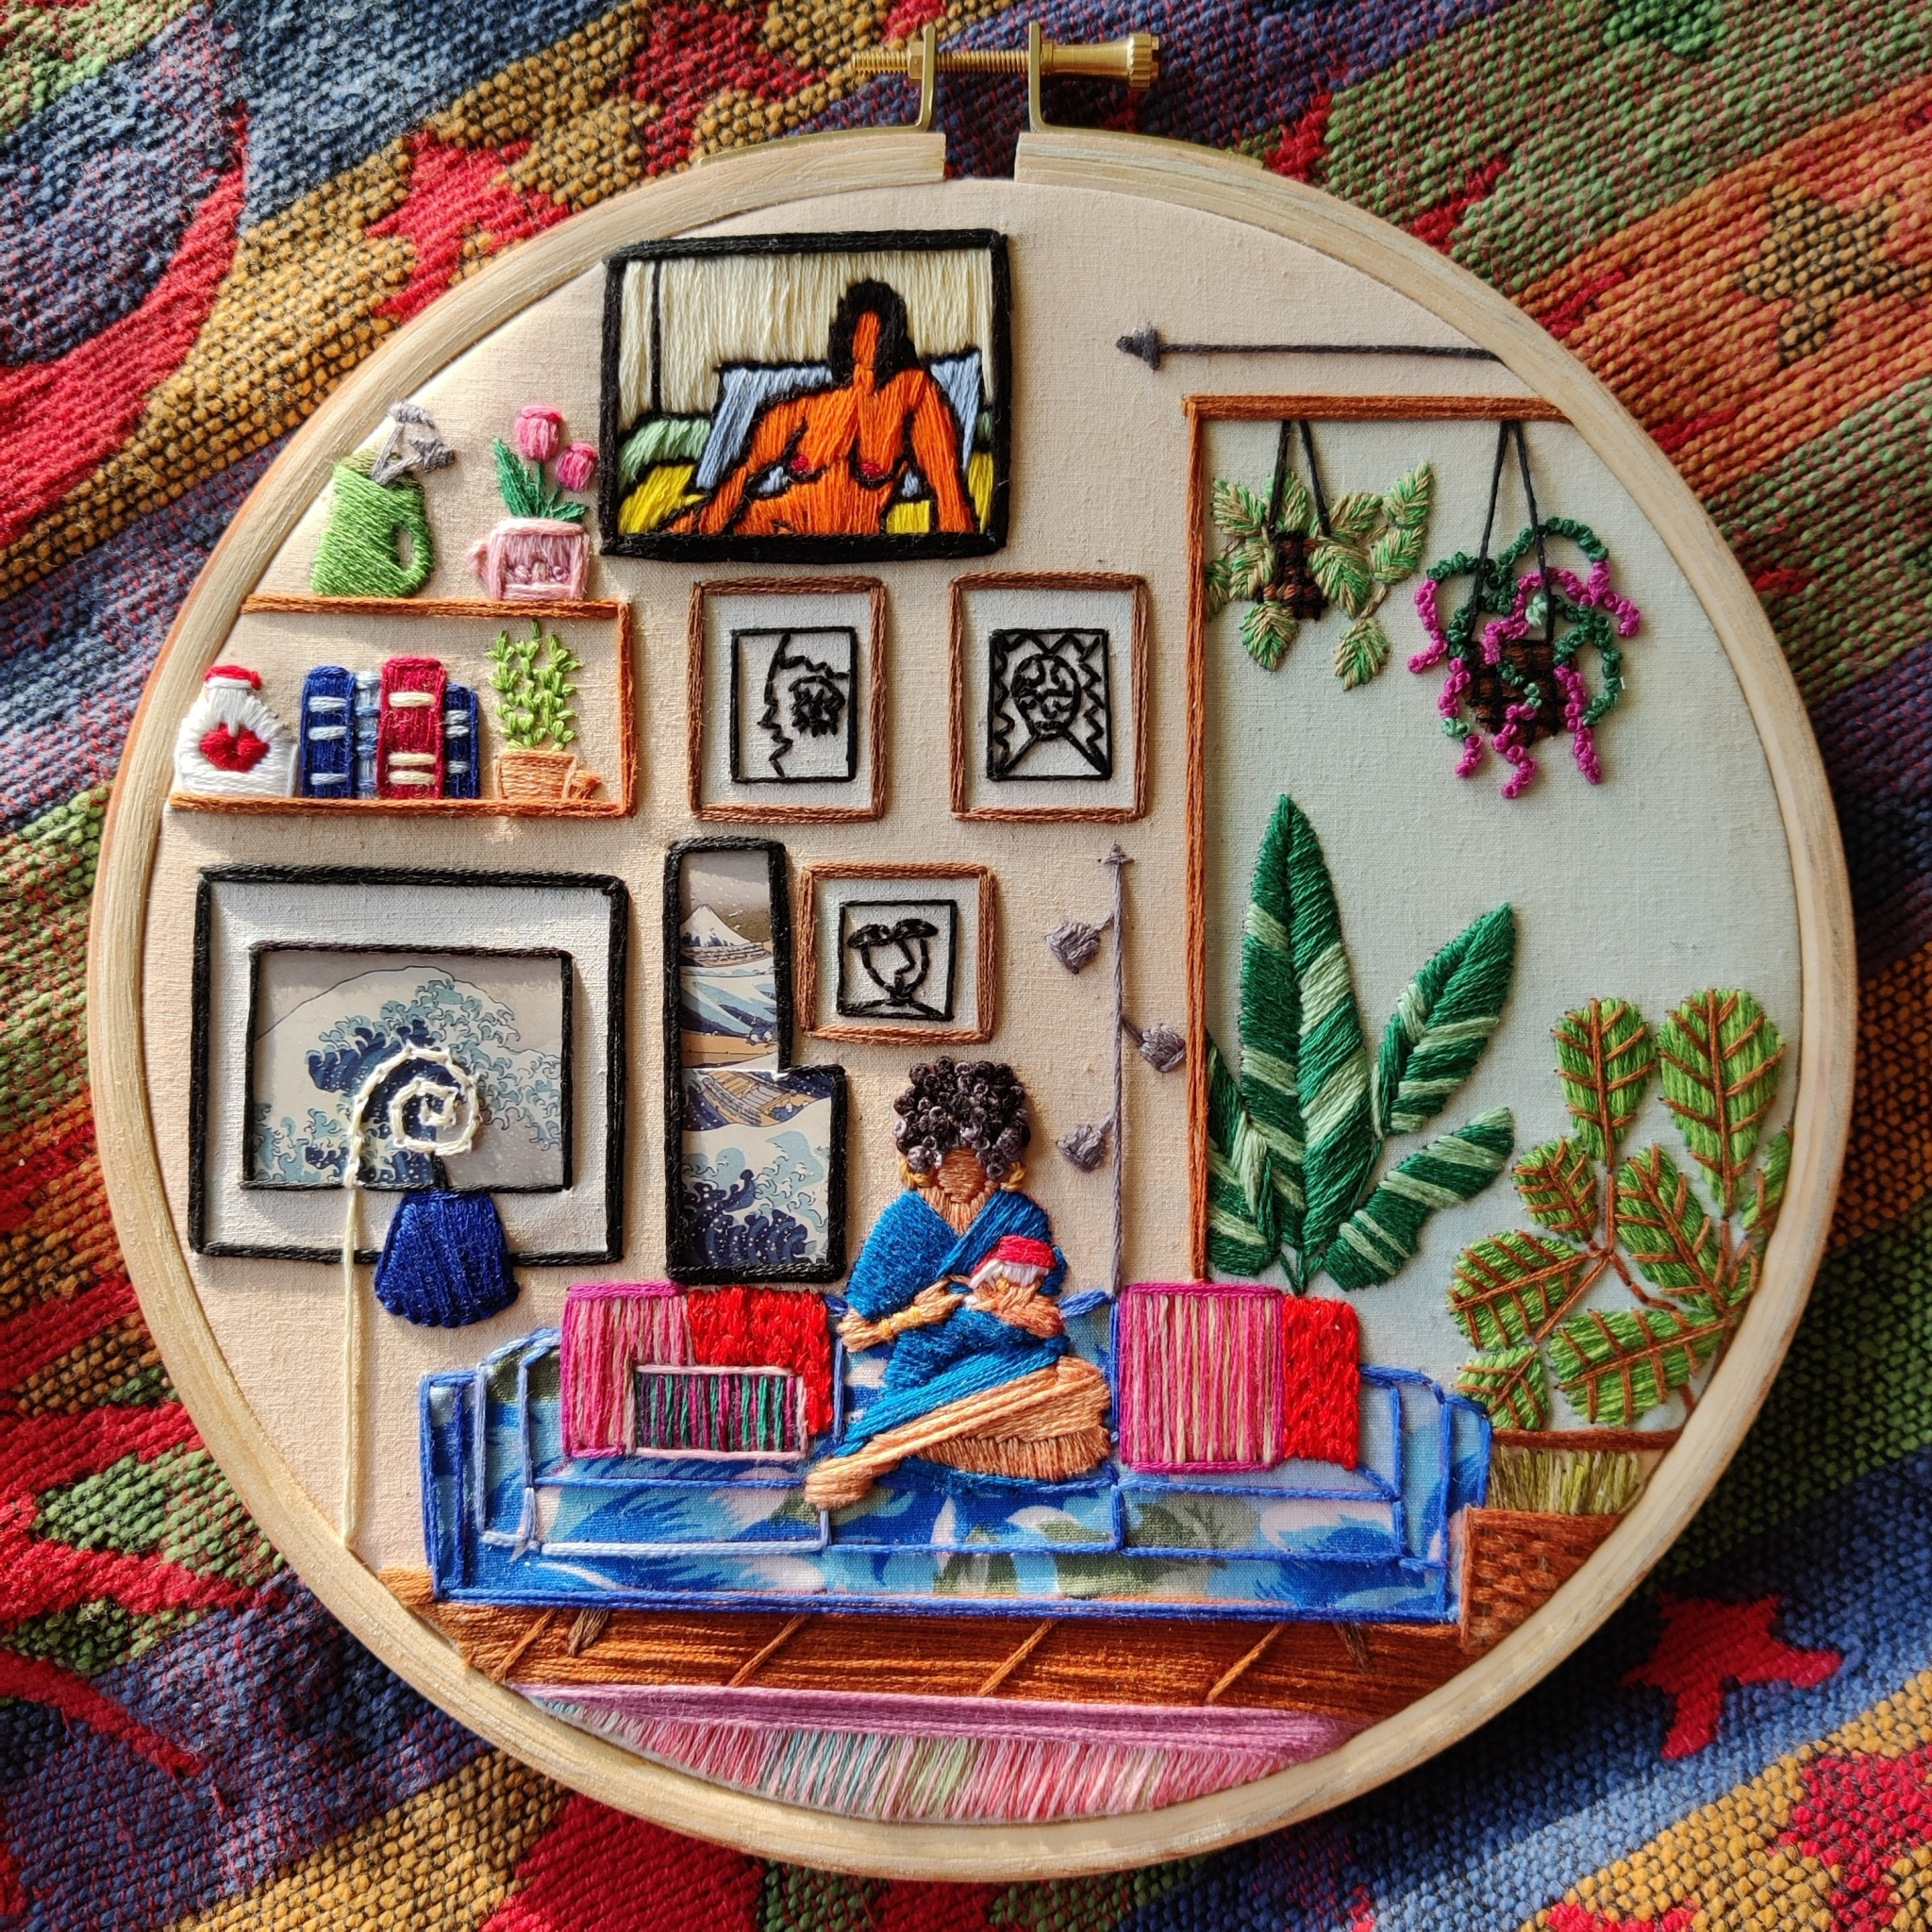 Embroidery Art of Daily Life by Anuradha Bhaumick